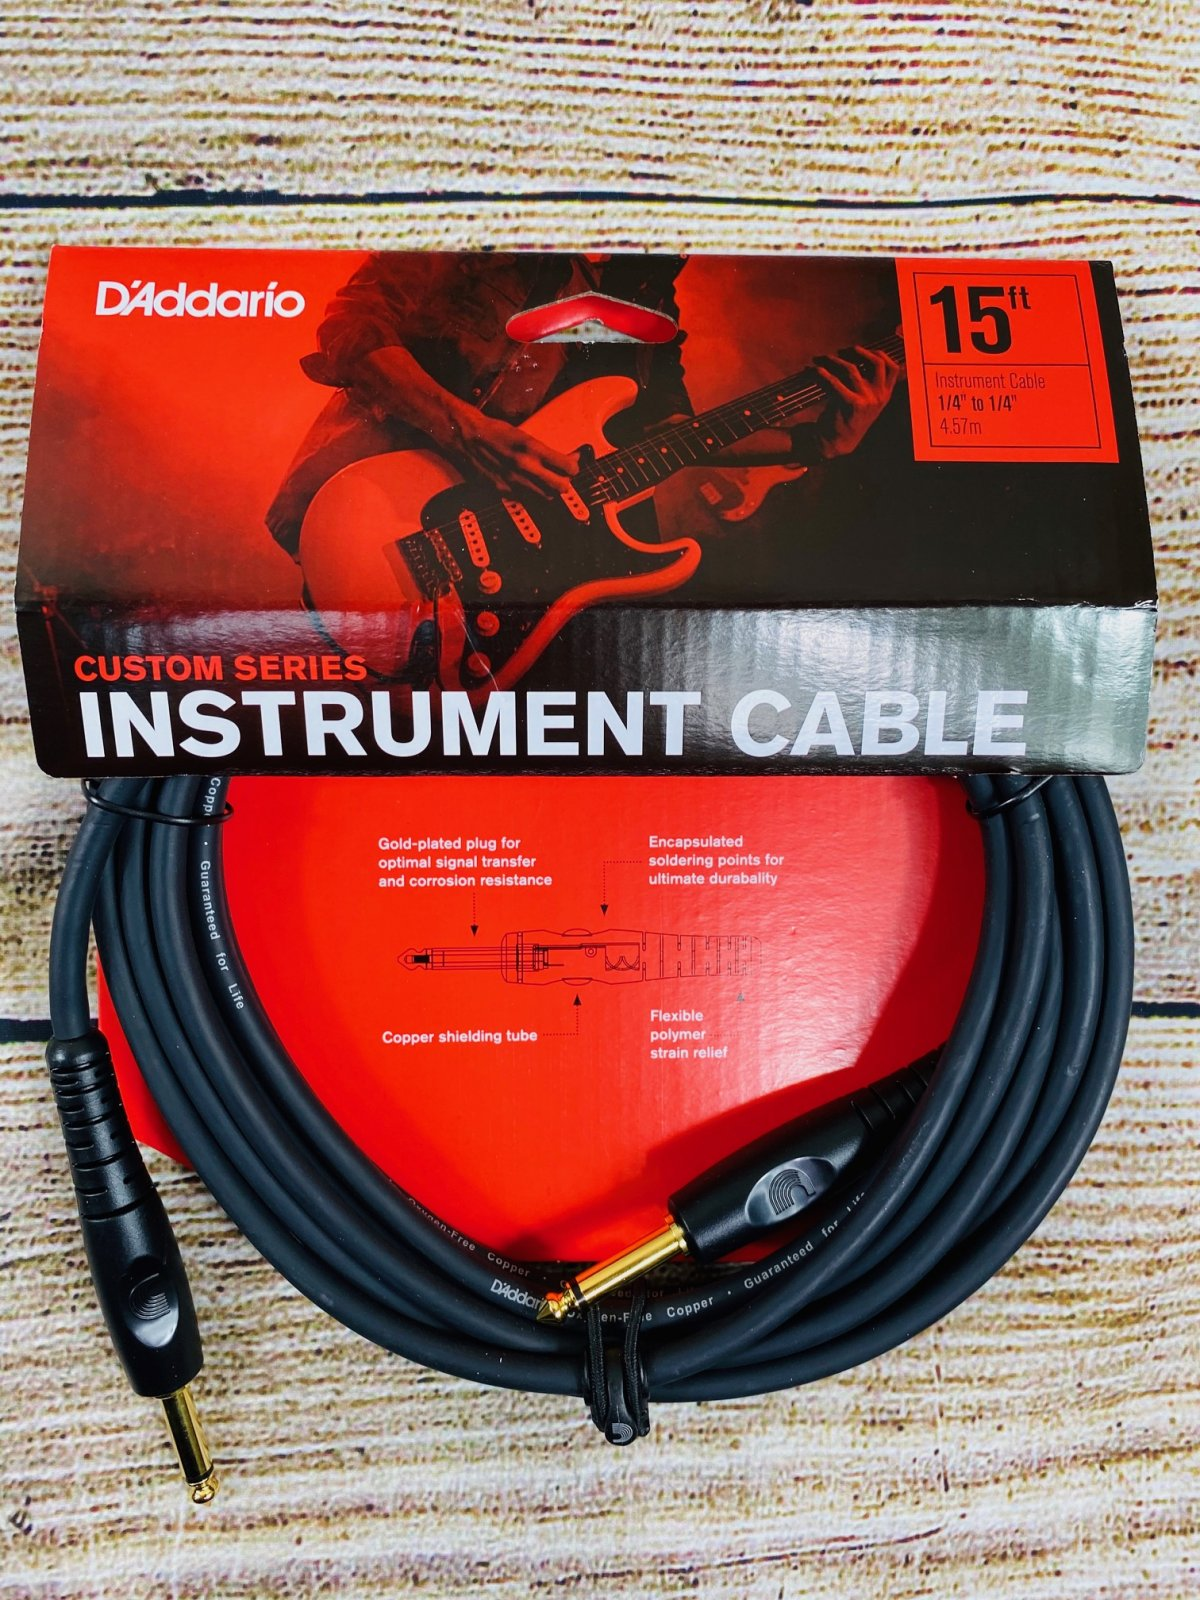 D'Addario PW-G-15 Custom Series Straight to Straight Instrument Cable - 15 foot